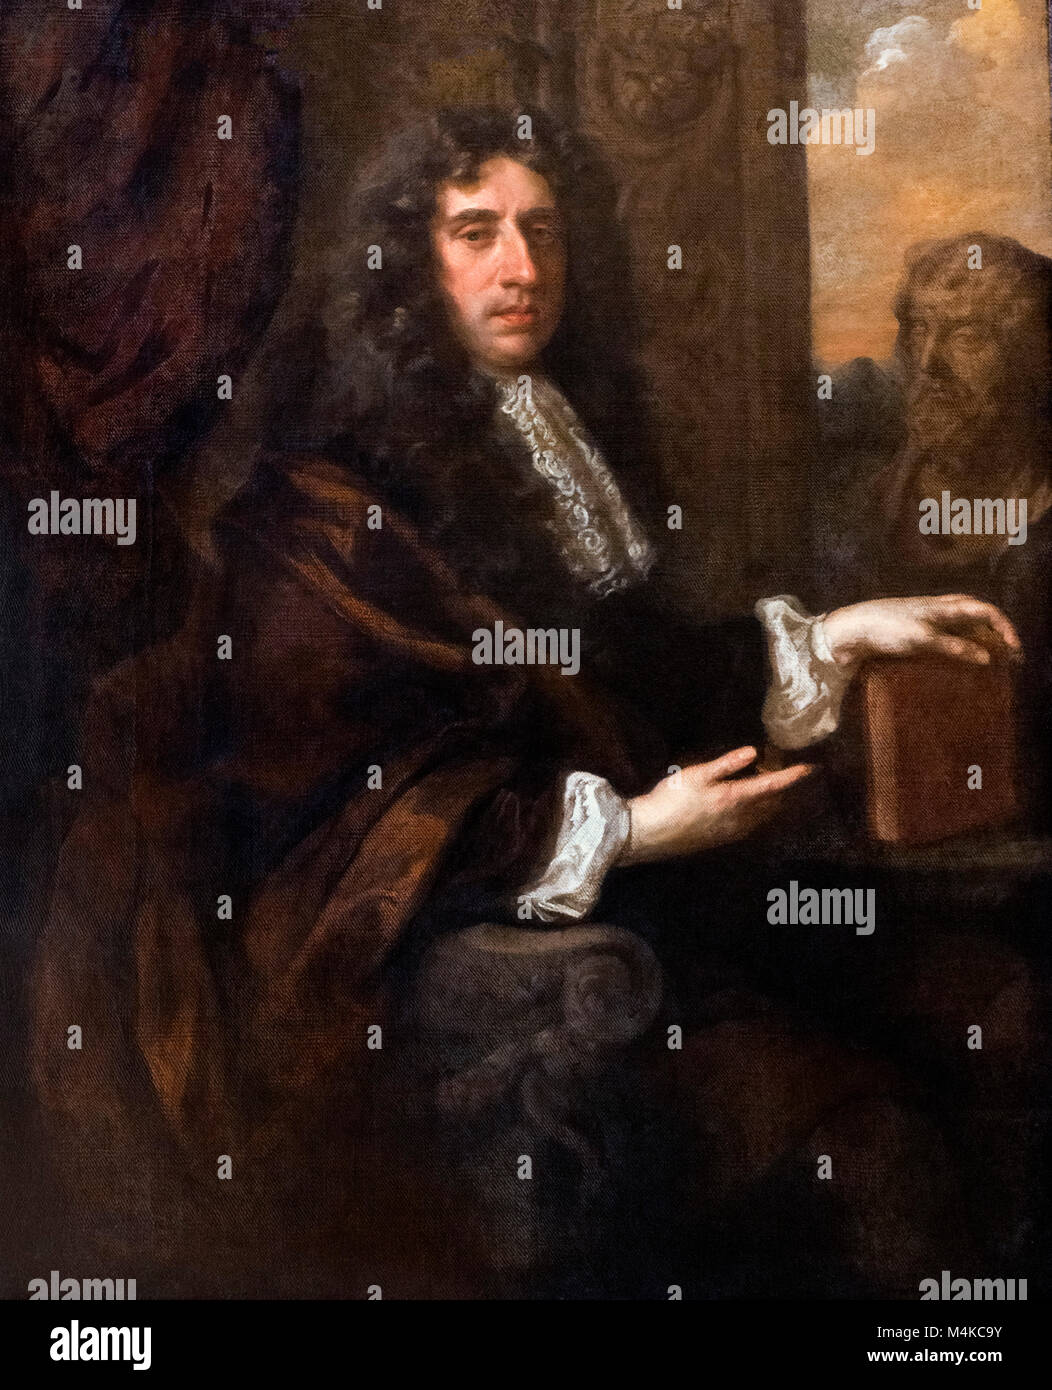 Sir Edmund King (1629-1709), portrait of the Royal physician by Sir Peter Lely, oil on canvas, 1670s - Stock Image